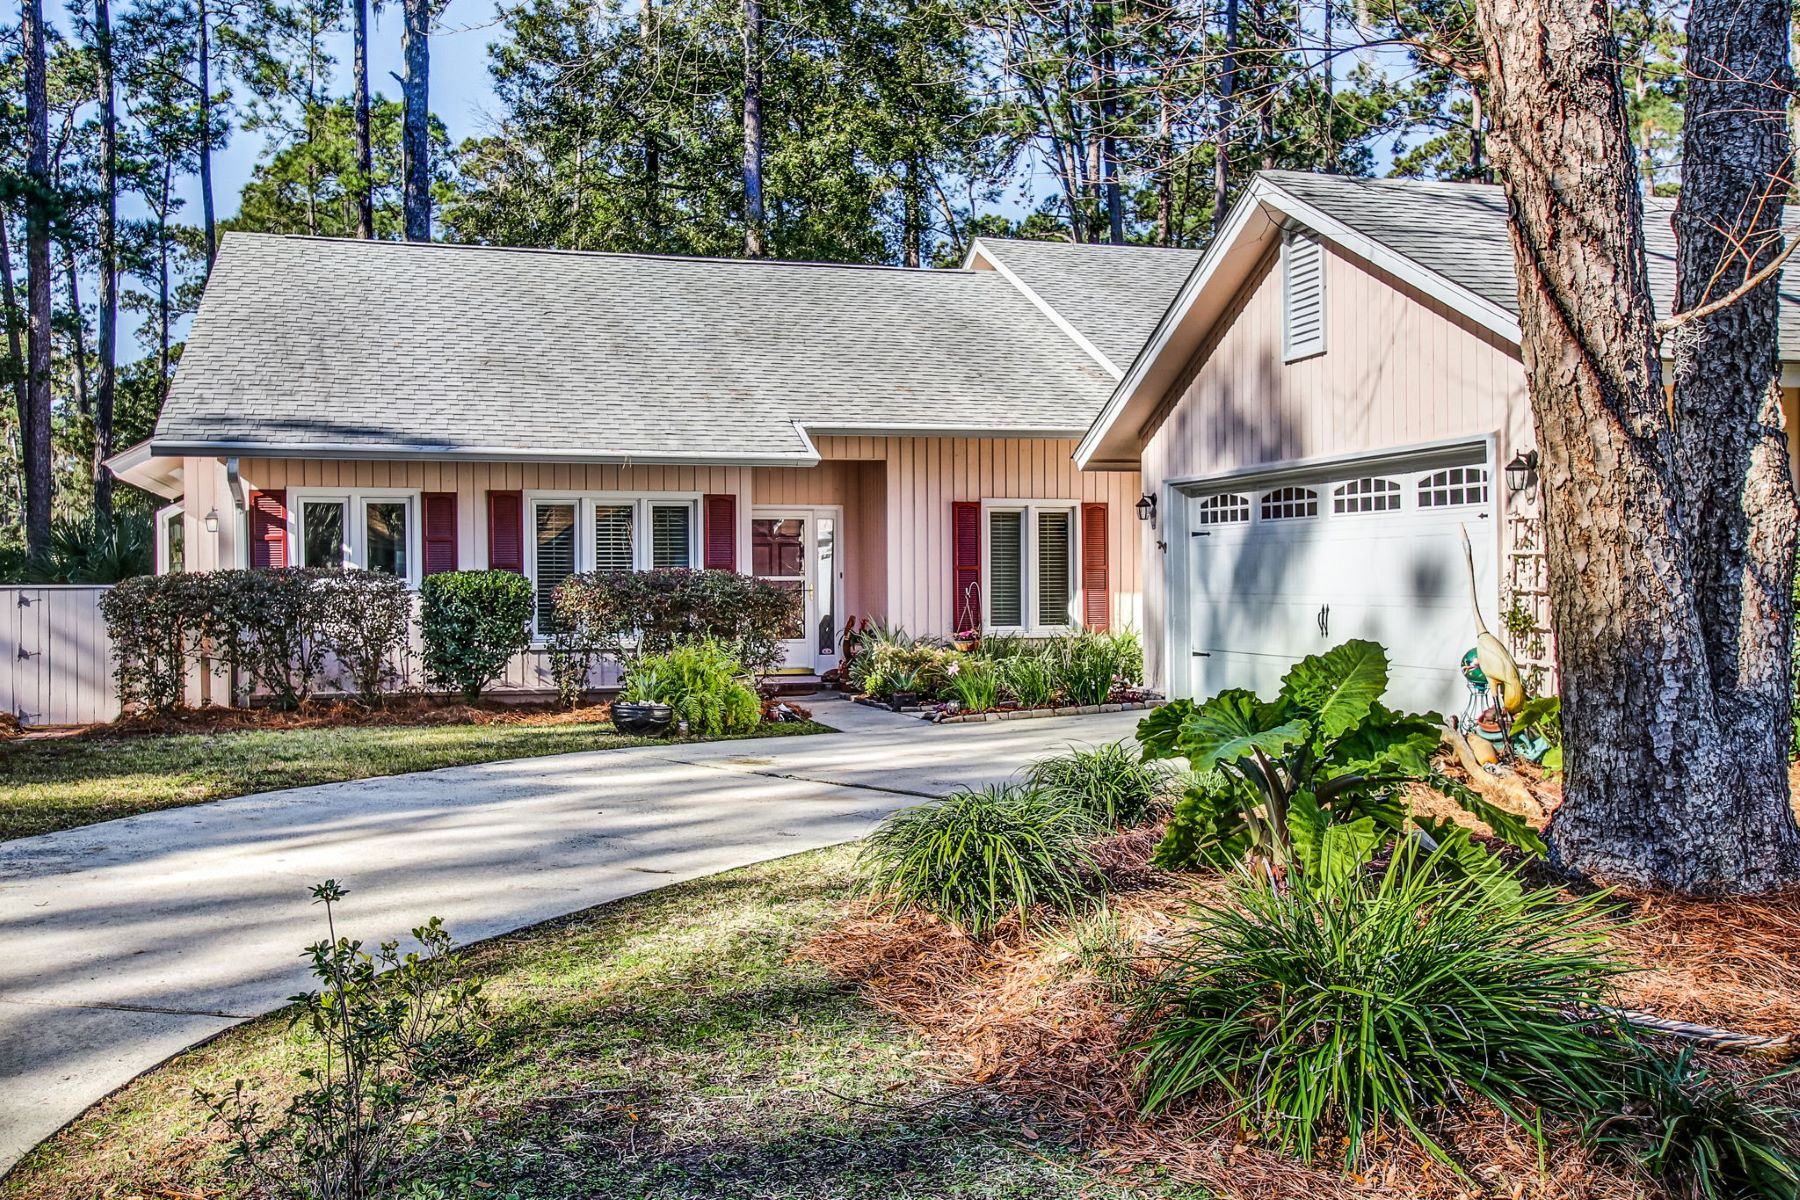 Single Family Homes for Sale at 45 Village Green Circle Skidaway Island, Georgia 31411 United States